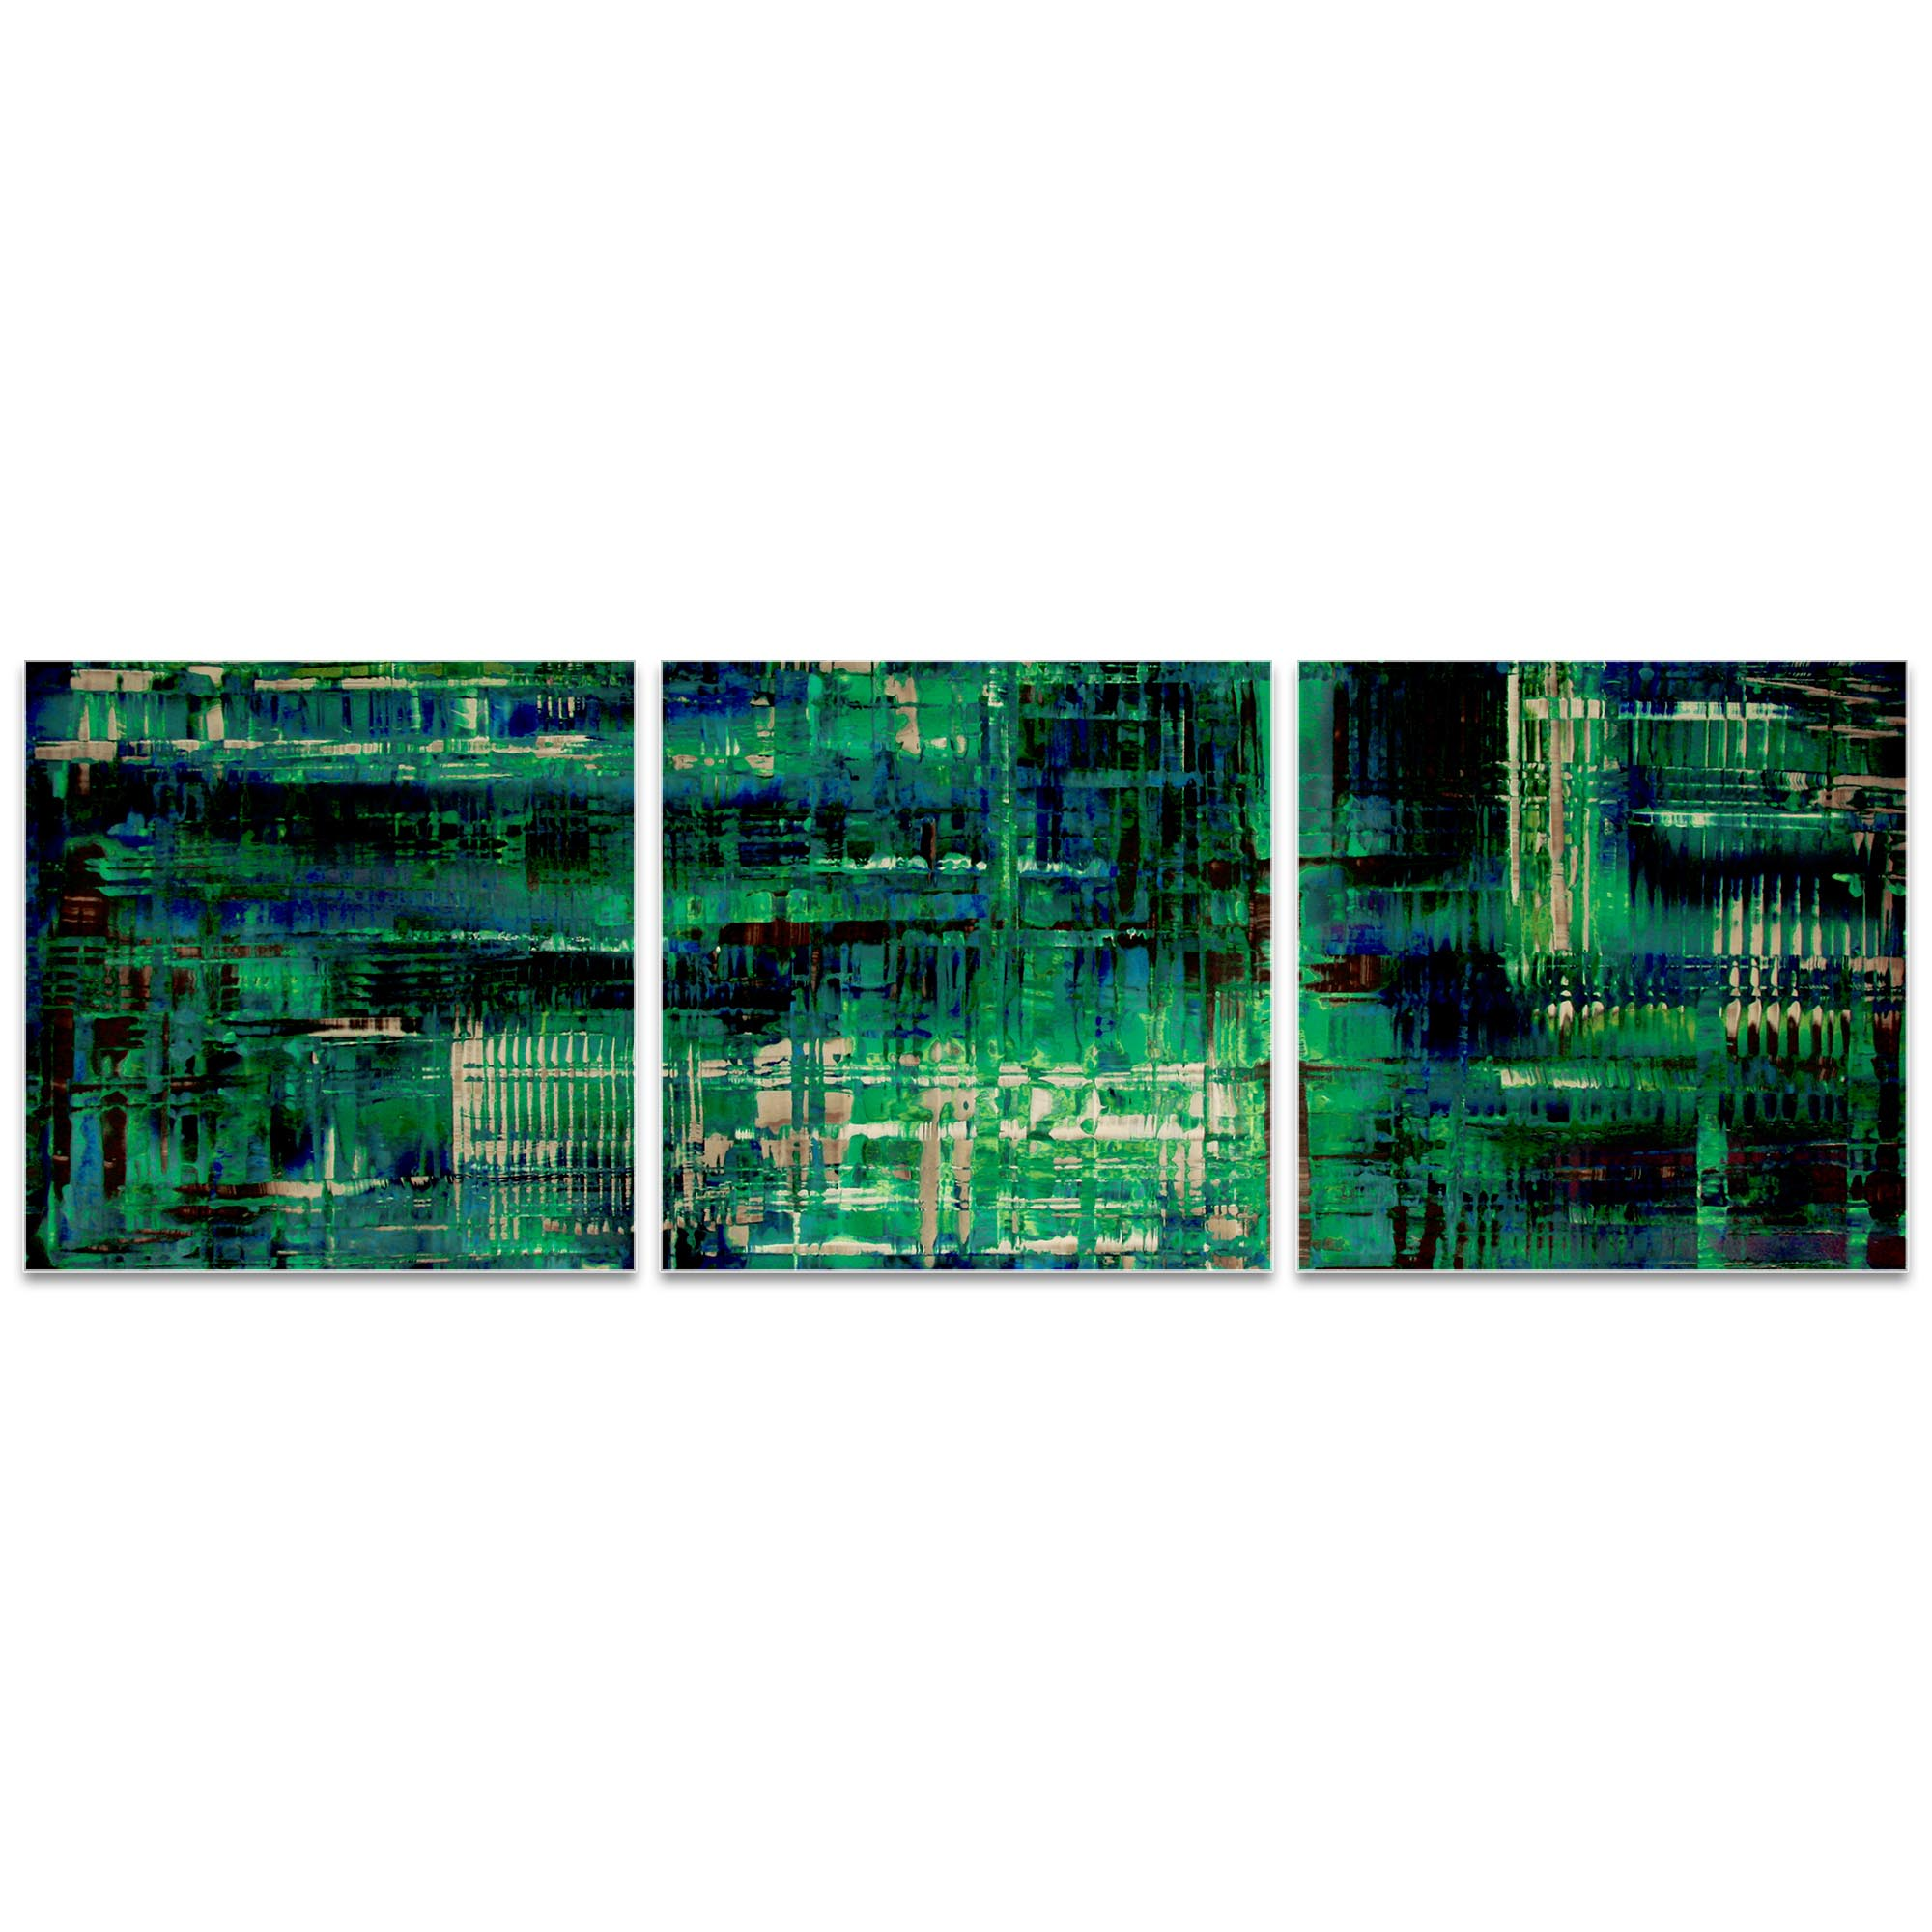 Aporia Blue Triptych 38x12in. Metal or Acrylic Contemporary Decor - Image 2